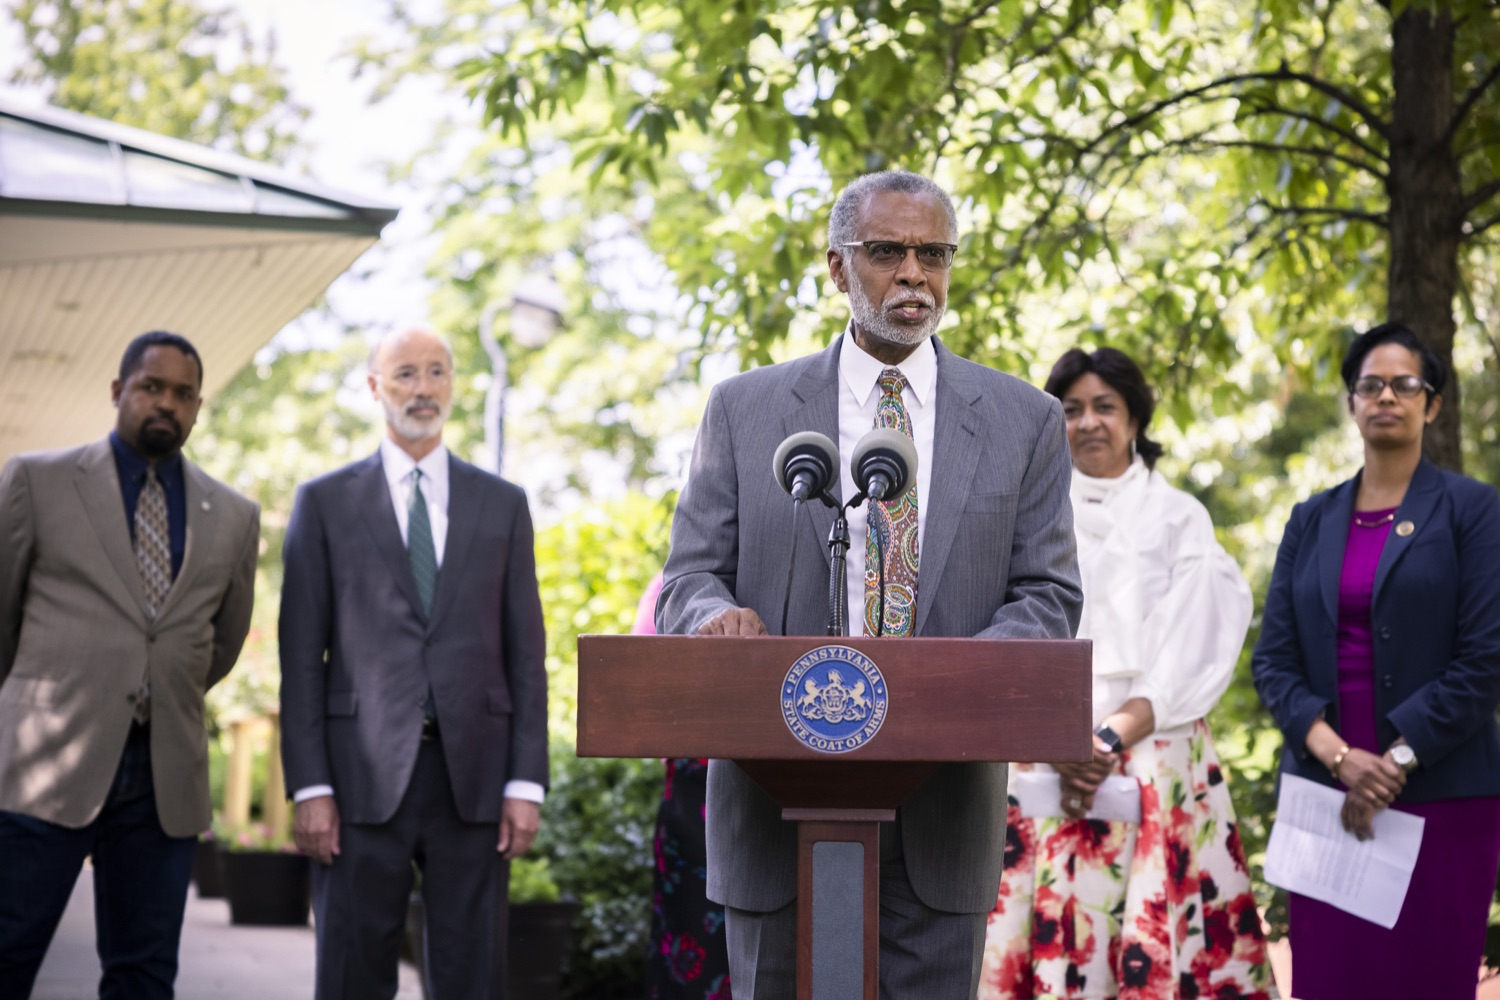 """<a href=""""https://filesource.wostreaming.net/commonwealthofpa/photo/18819_gov_reprodRights_dz_007.jpg"""" target=""""_blank"""">⇣Download Photo<br></a>Pennsylvania State Senator Art Haywood speaking with the press.  Governor Wolf will discuss proposed anti-choice legislation that is moving through the House of Representatives and reaffirm that he will veto this damaging legislation.  JUNE 10, 2021 - PHILADELPHIA, PA"""